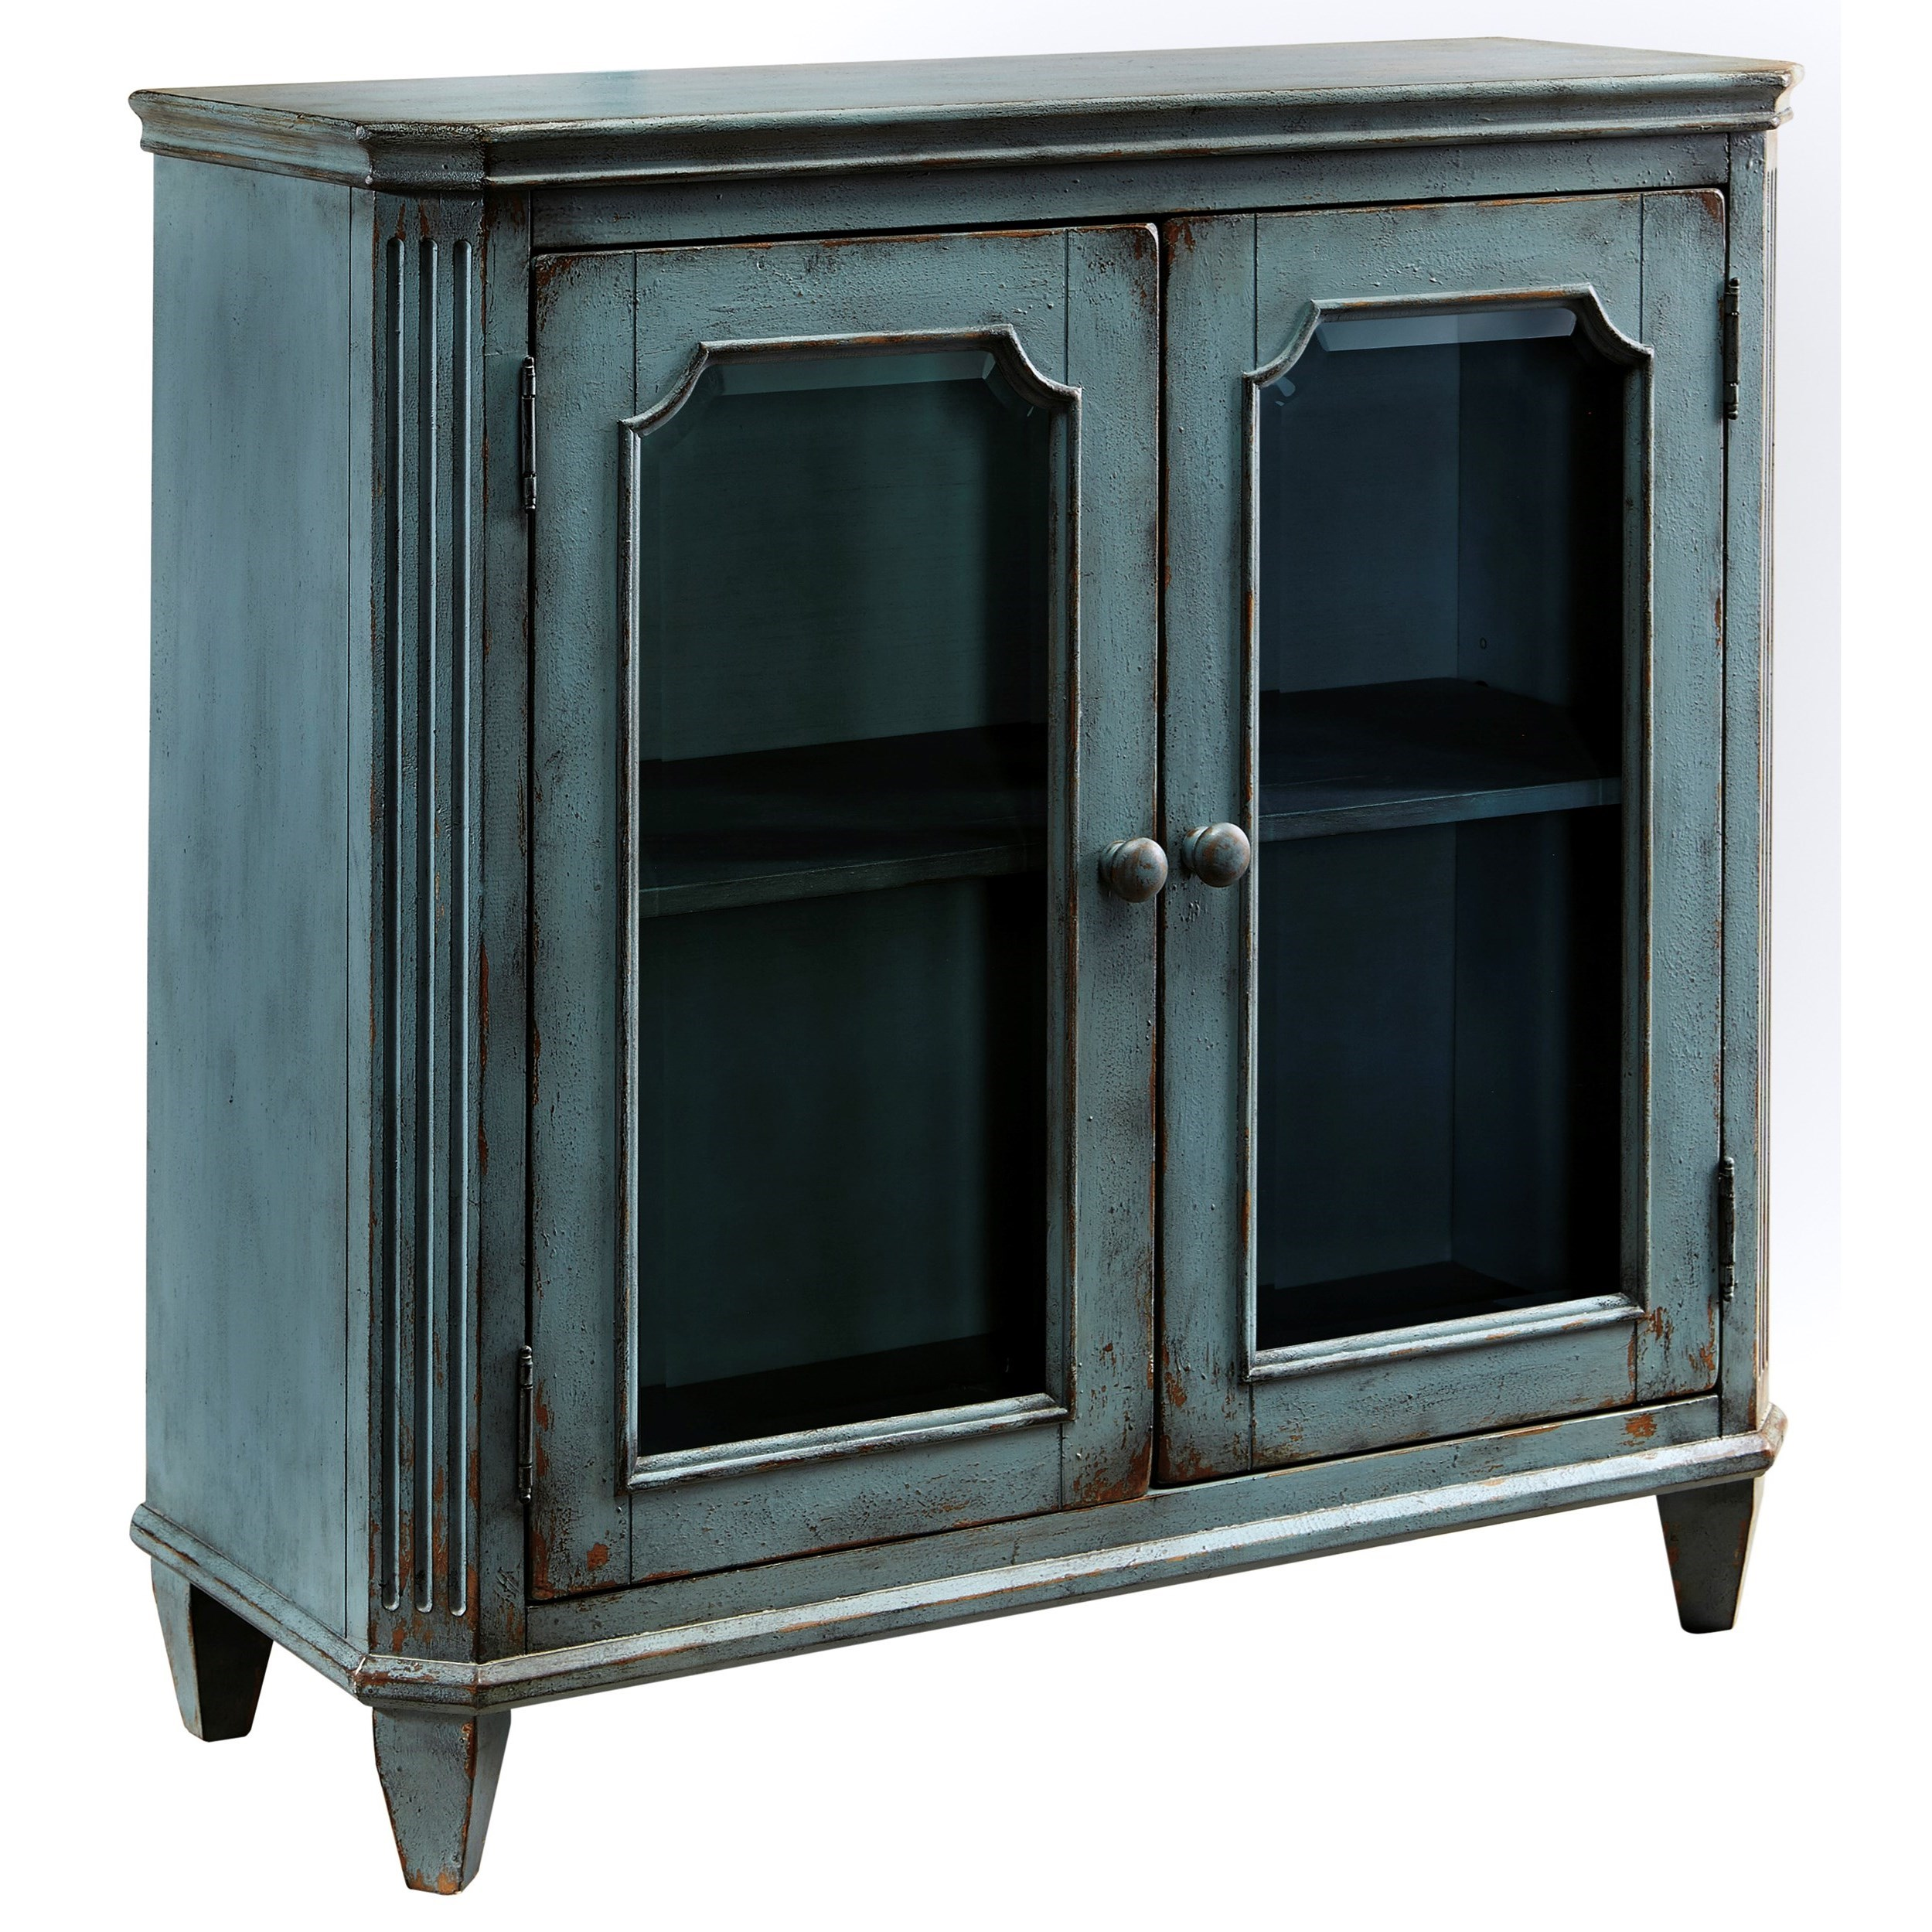 French Provincial Style Glass Door Accent Cabinet in Antique Teal ...